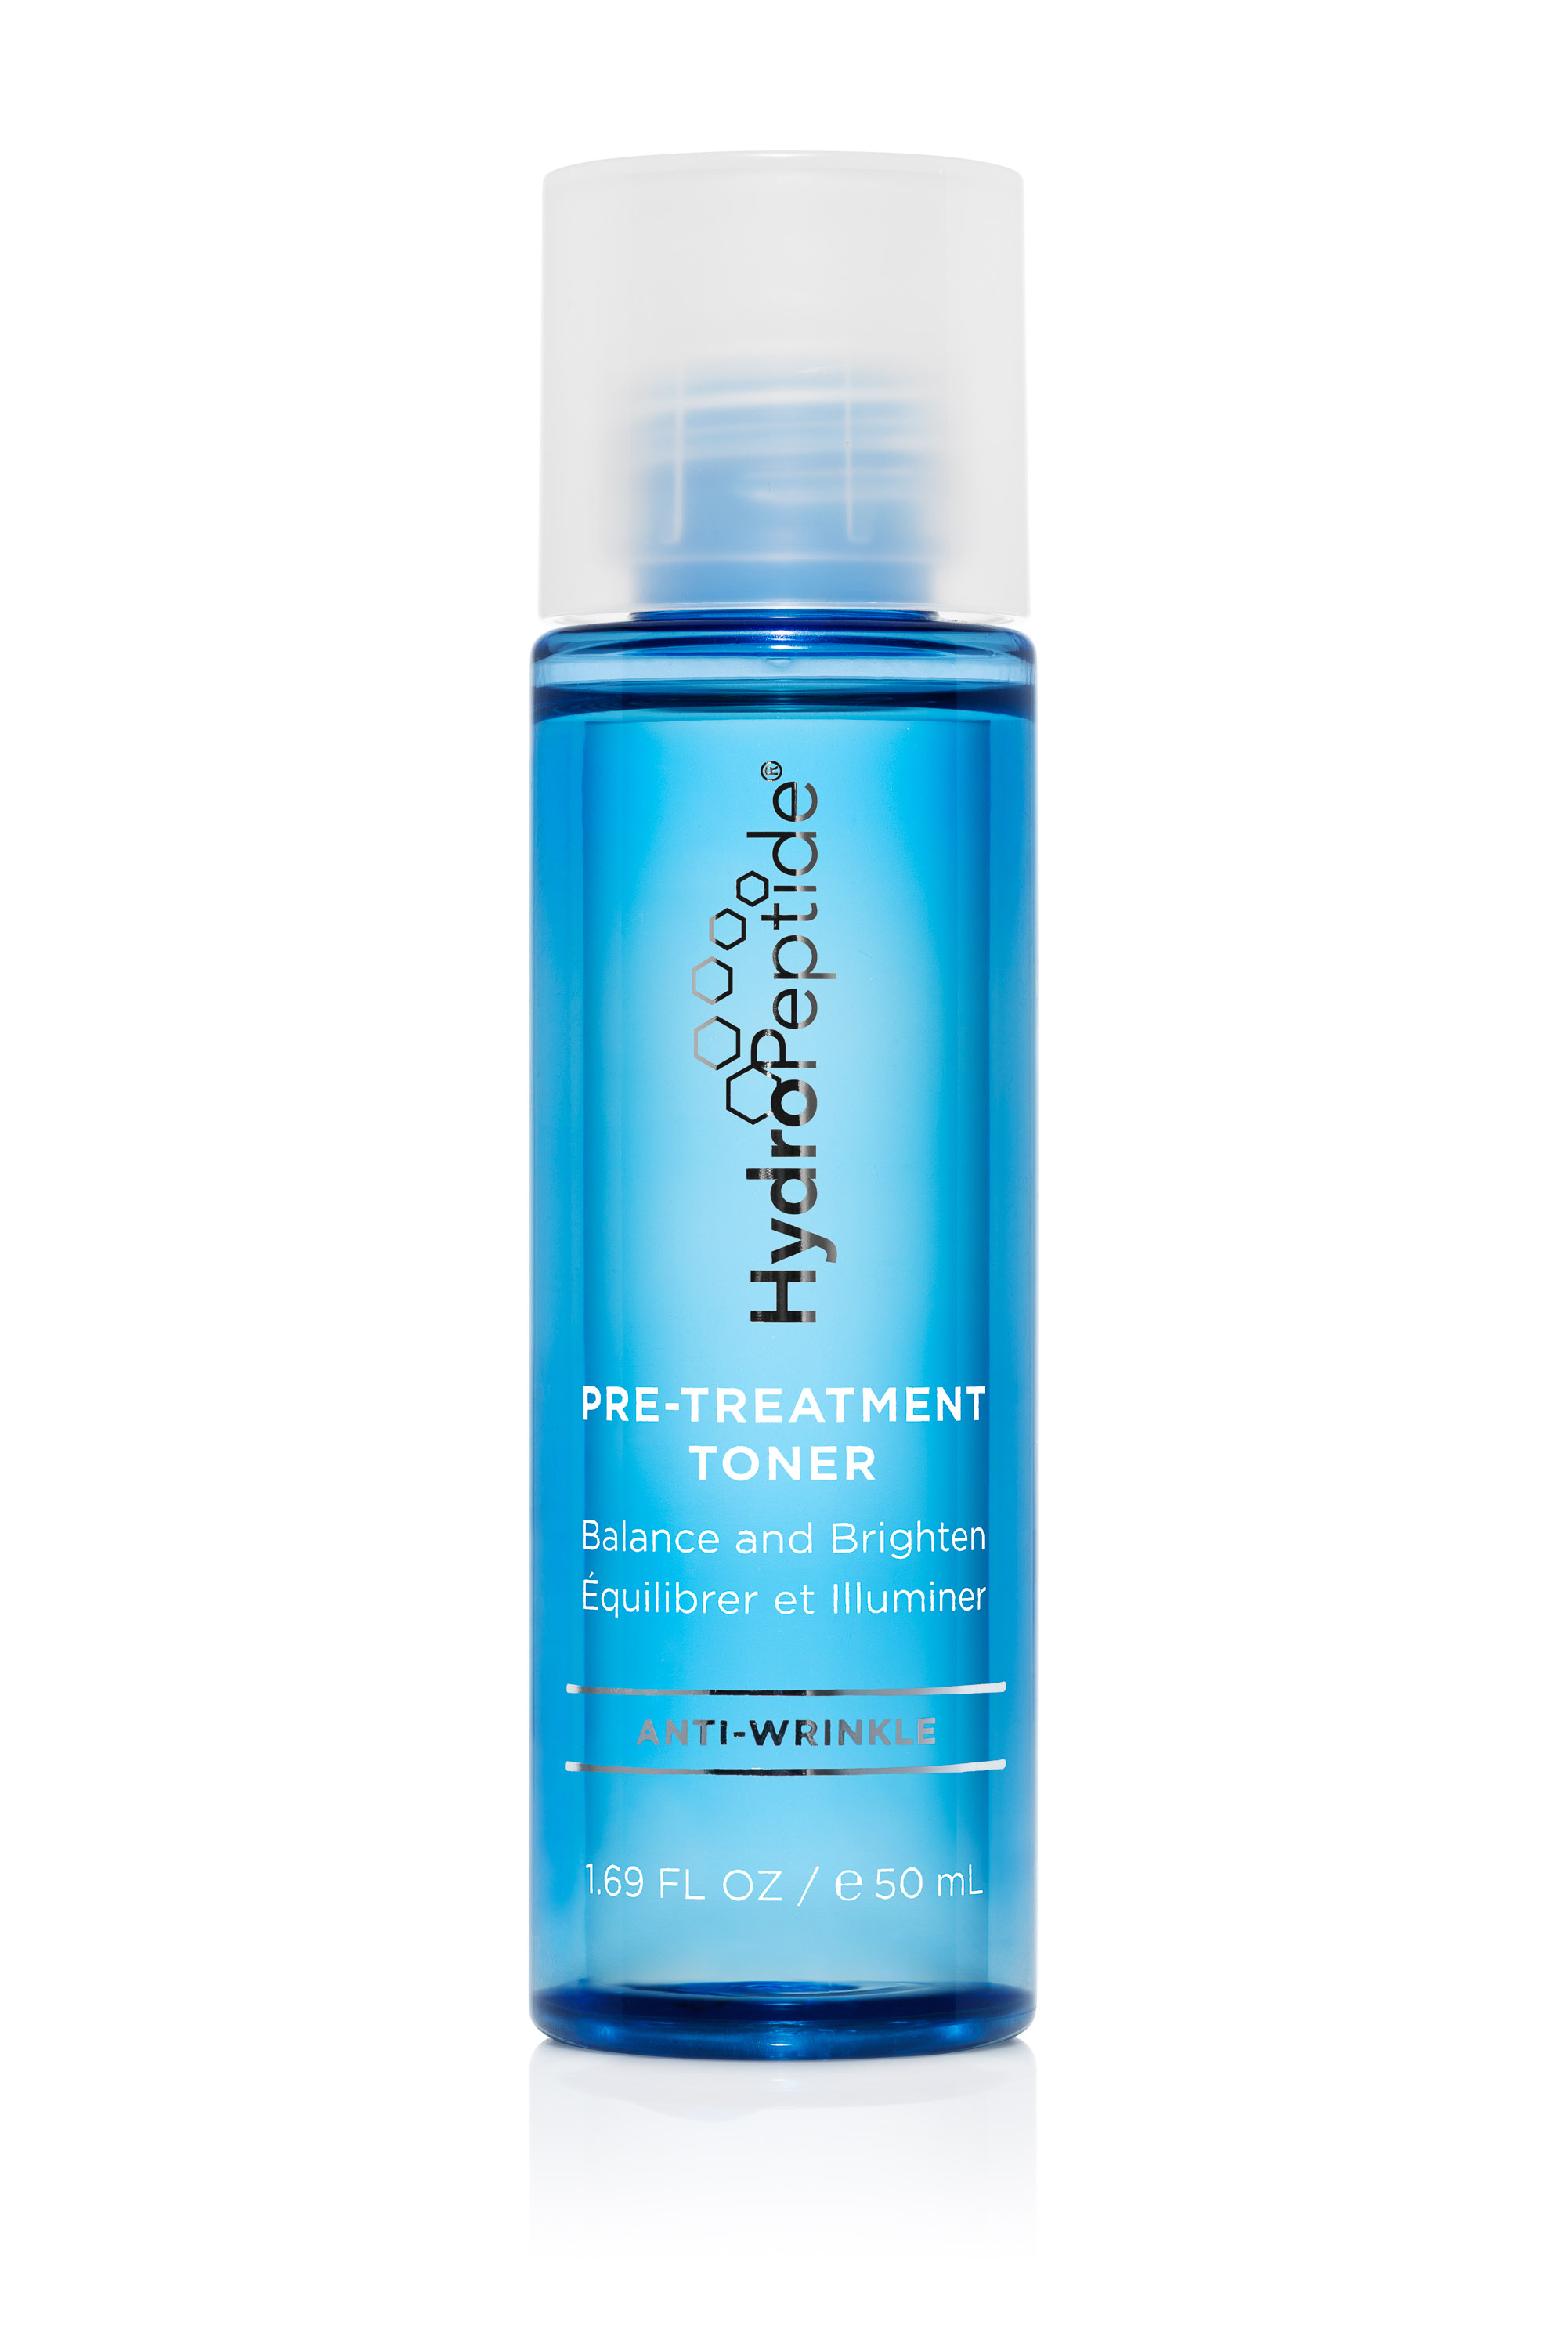 HYDROPEPTIDE TRAVEL PRE-TREATMENT TONER